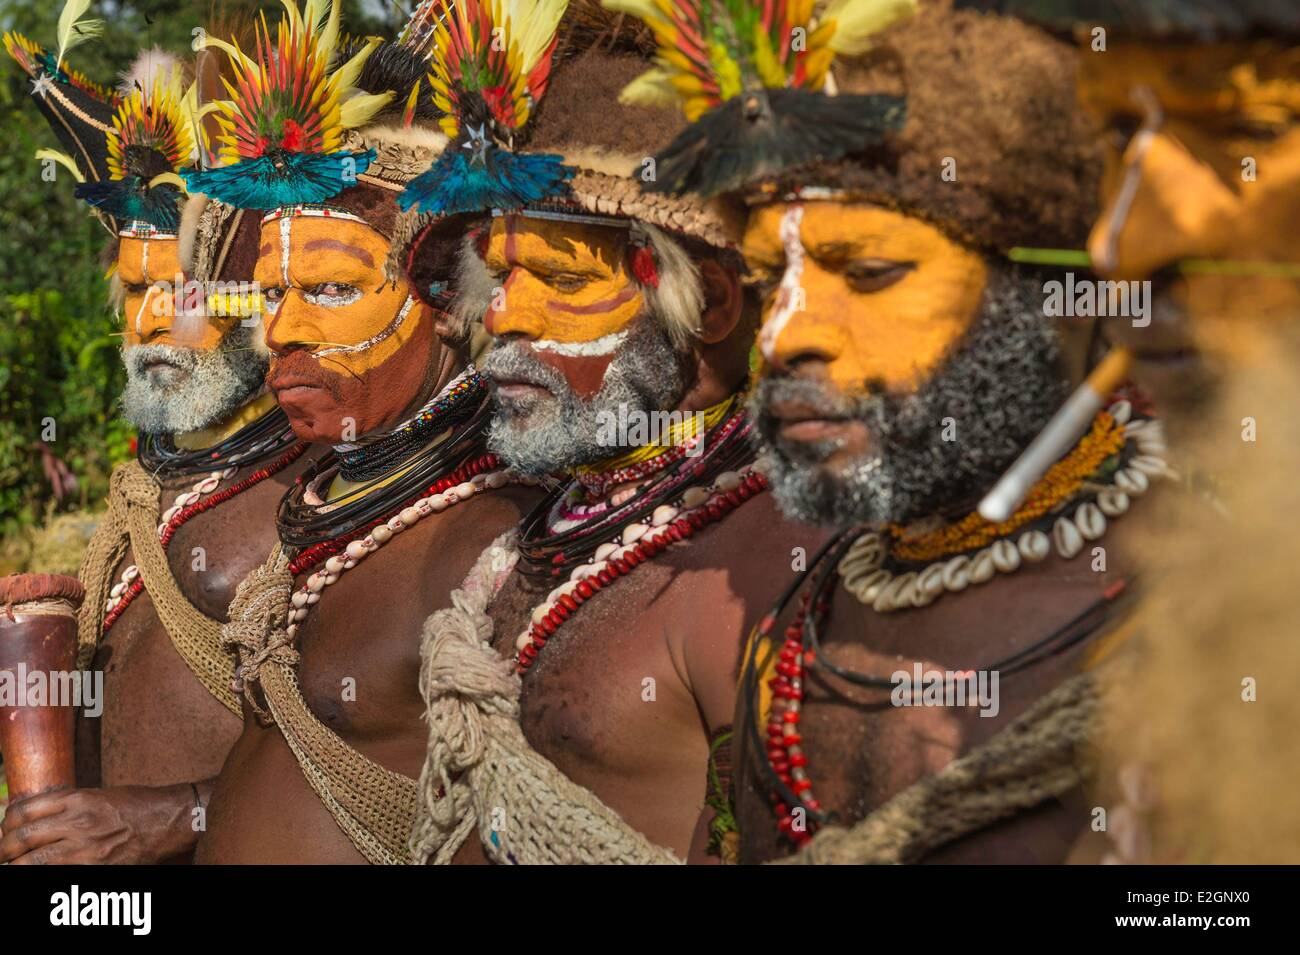 Papua New Guinea Southern Highlands Province Tari region Huli tribe village of Kobe Dumbiali shooting during filming - Stock Image